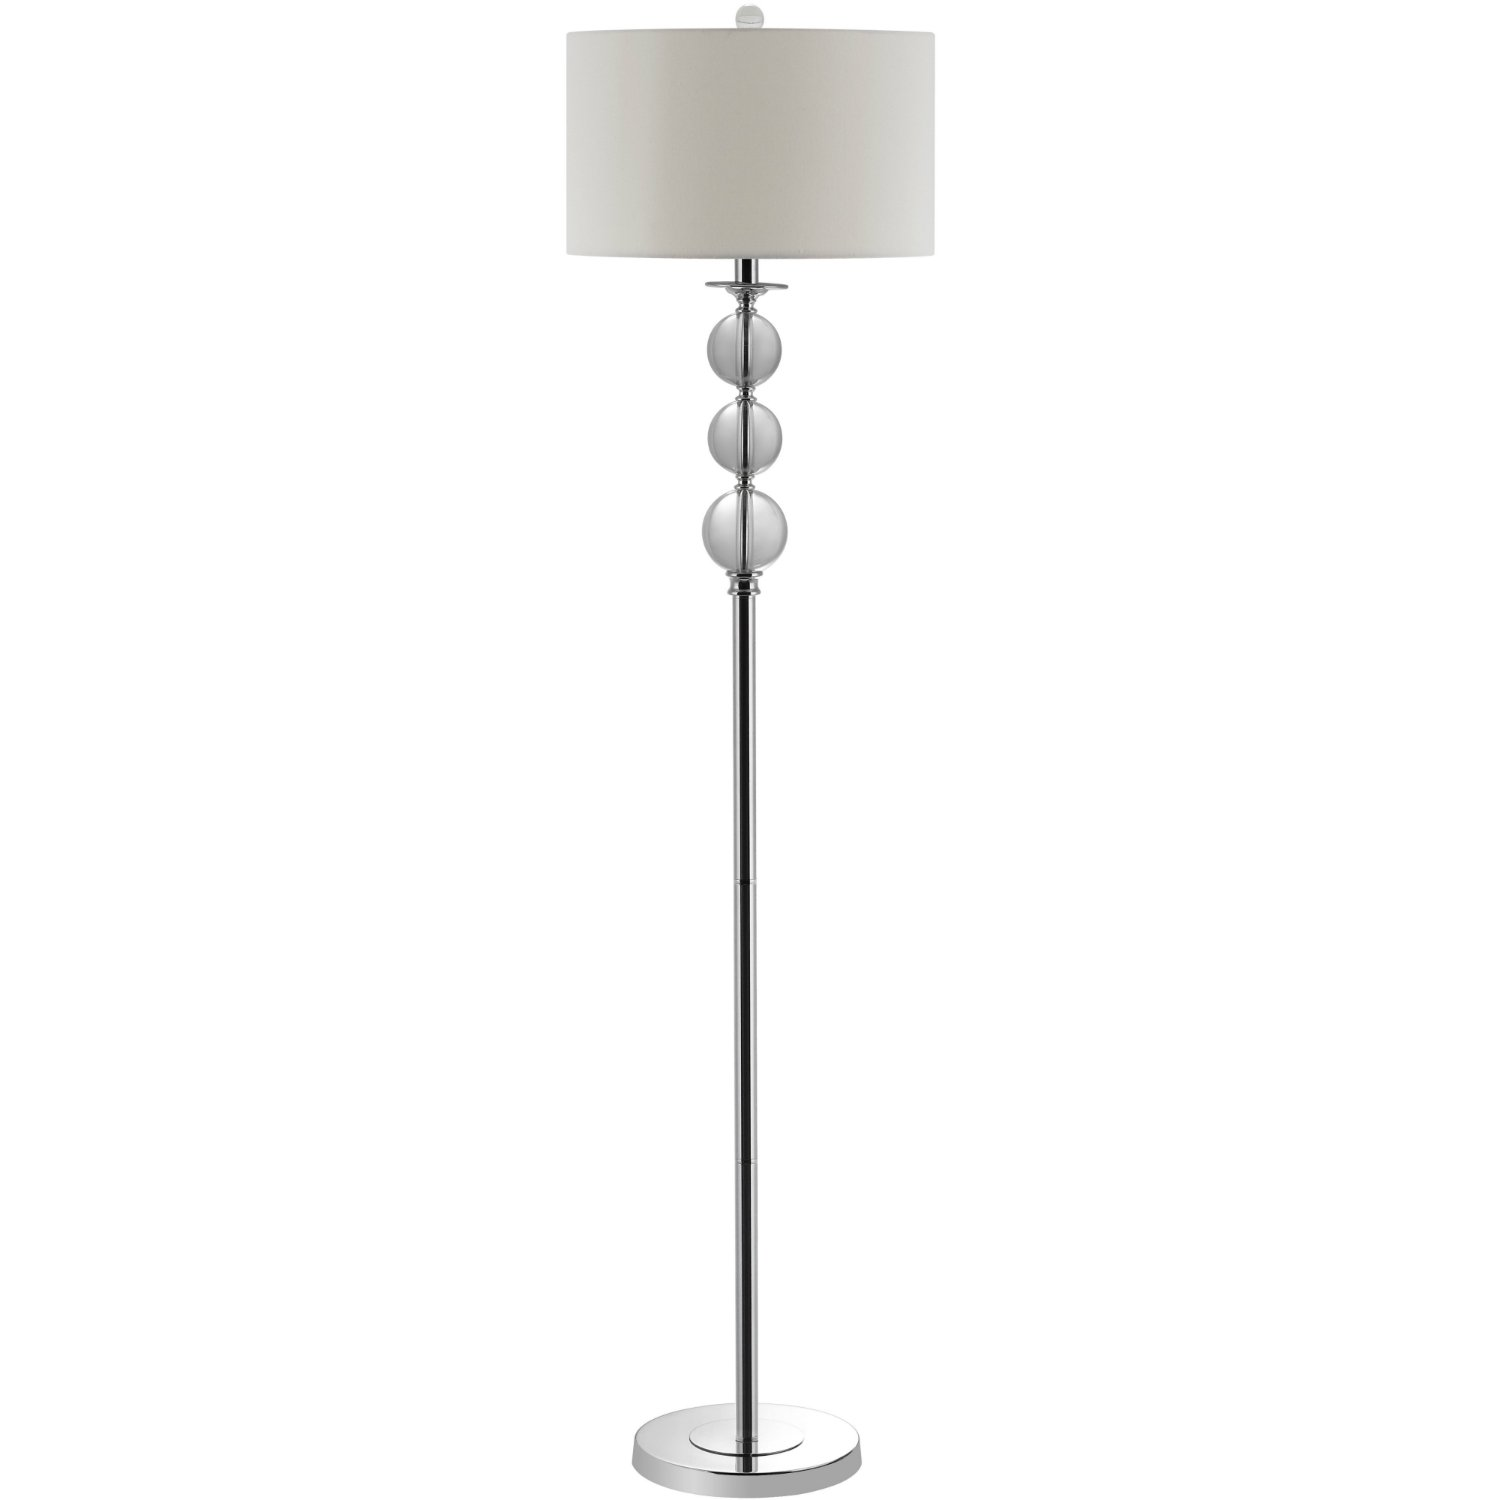 62-Inch Simple & Modern Floor Lamp with Off White Drum Shade & Glass Spheres Design Stand For Living Room